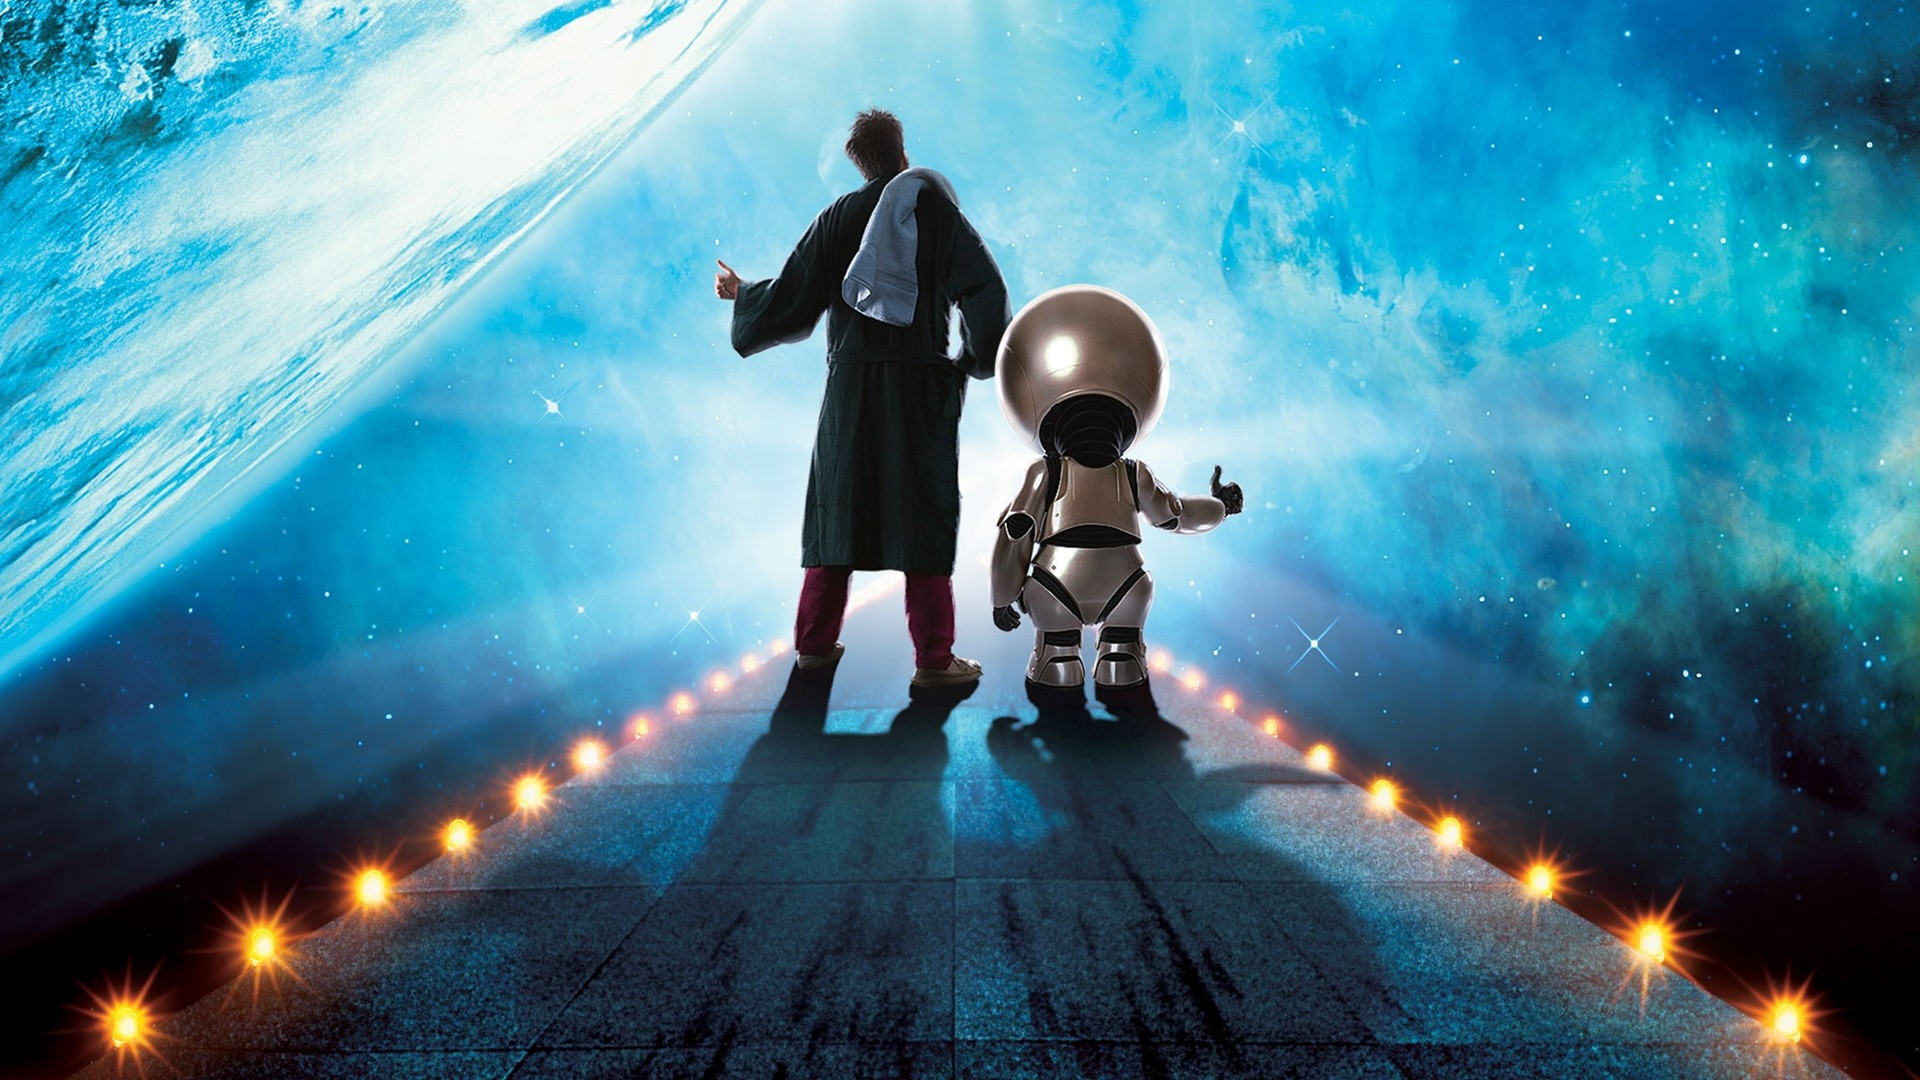 The hitch hikers guide movie